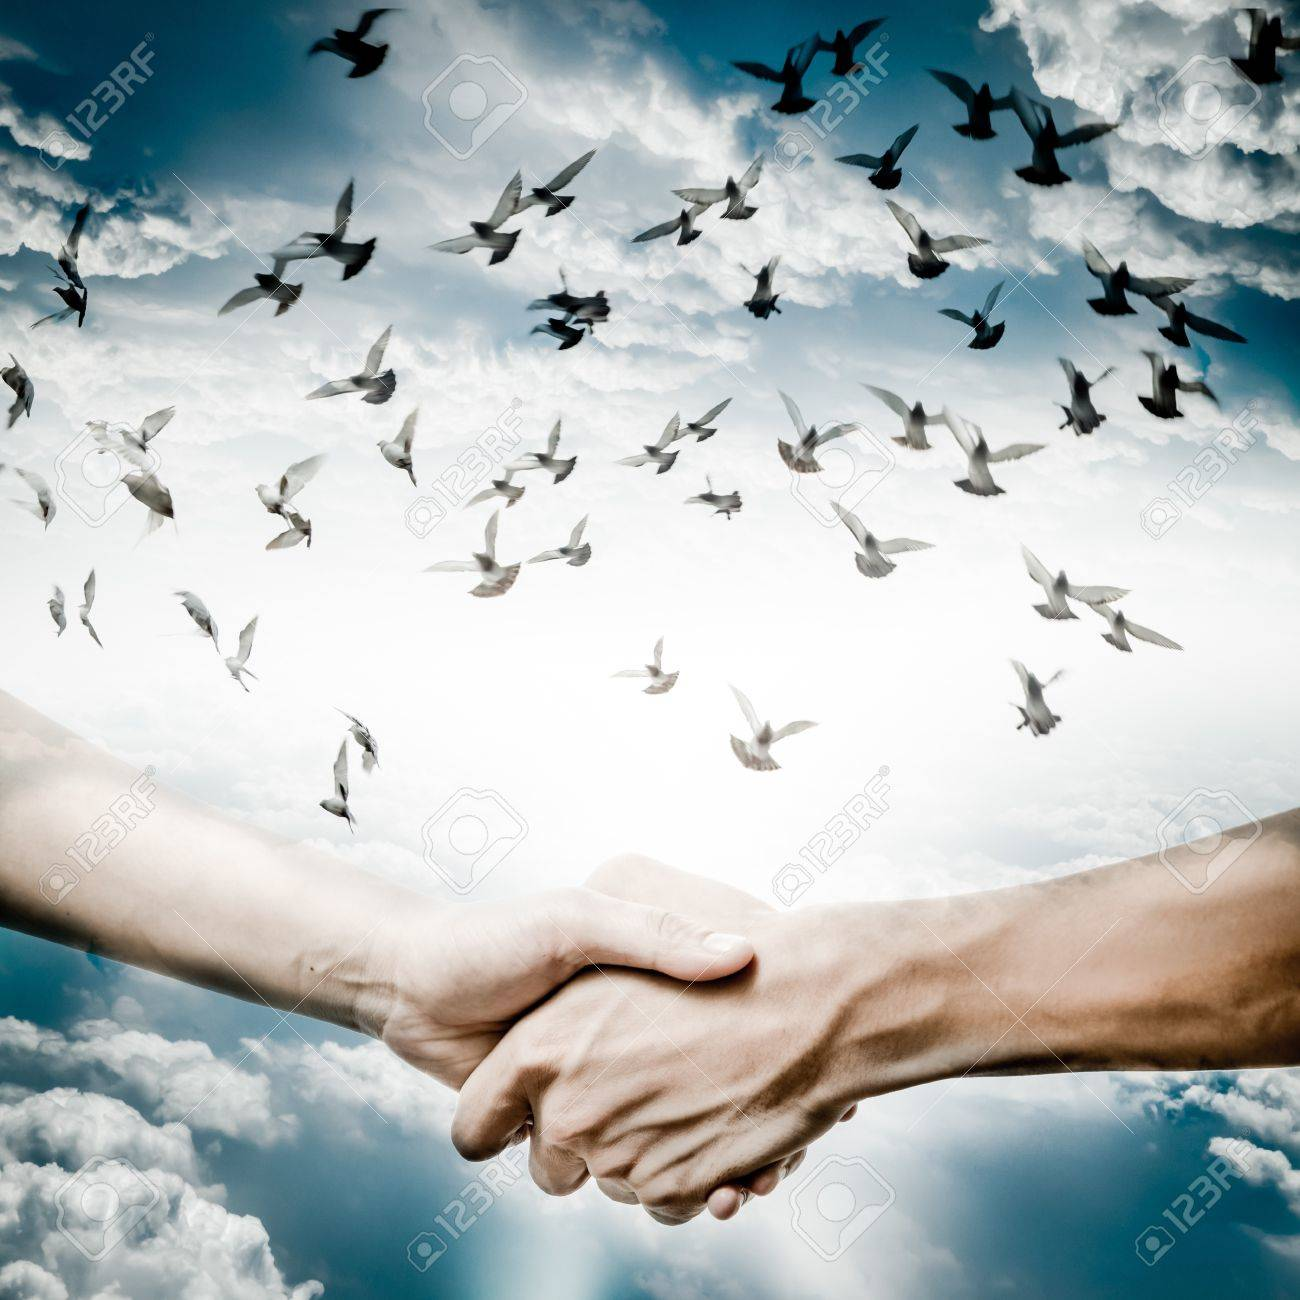 hand shake with dove flying on sky, business concept background. Stock Photo - 18283906